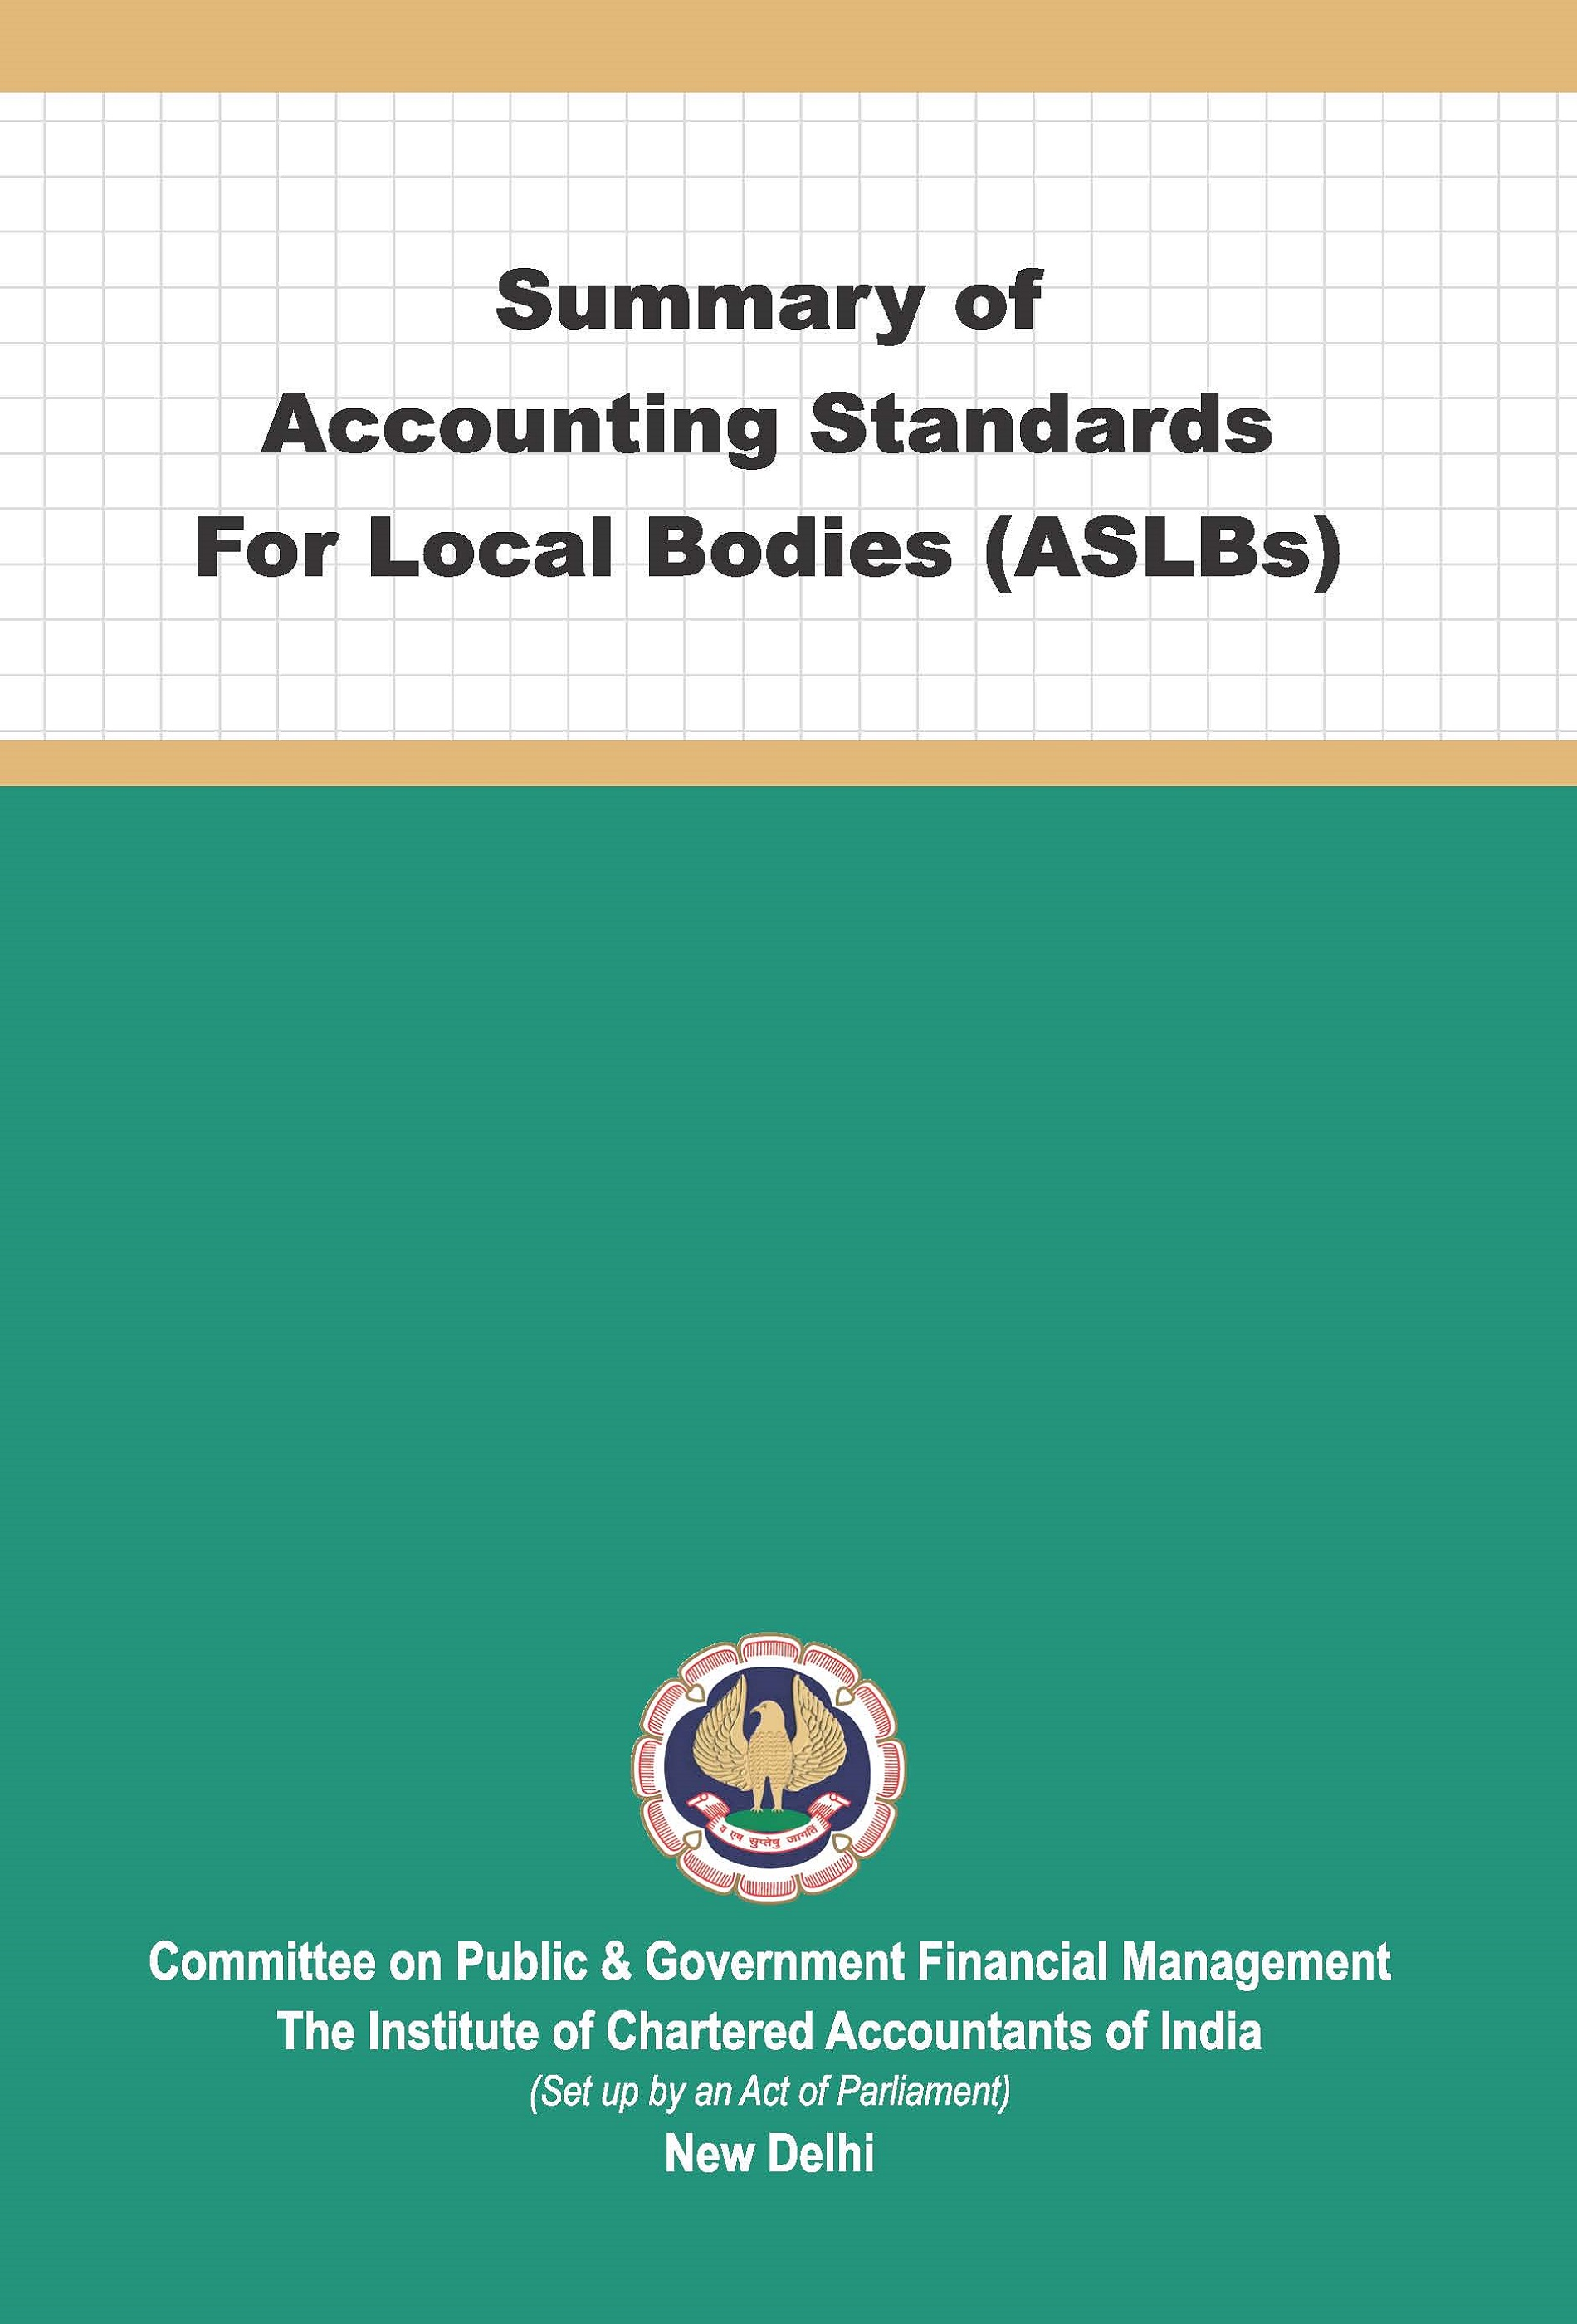 Summary of Accounting Standards for Local Bodies (ASLBs) (July, 2021)